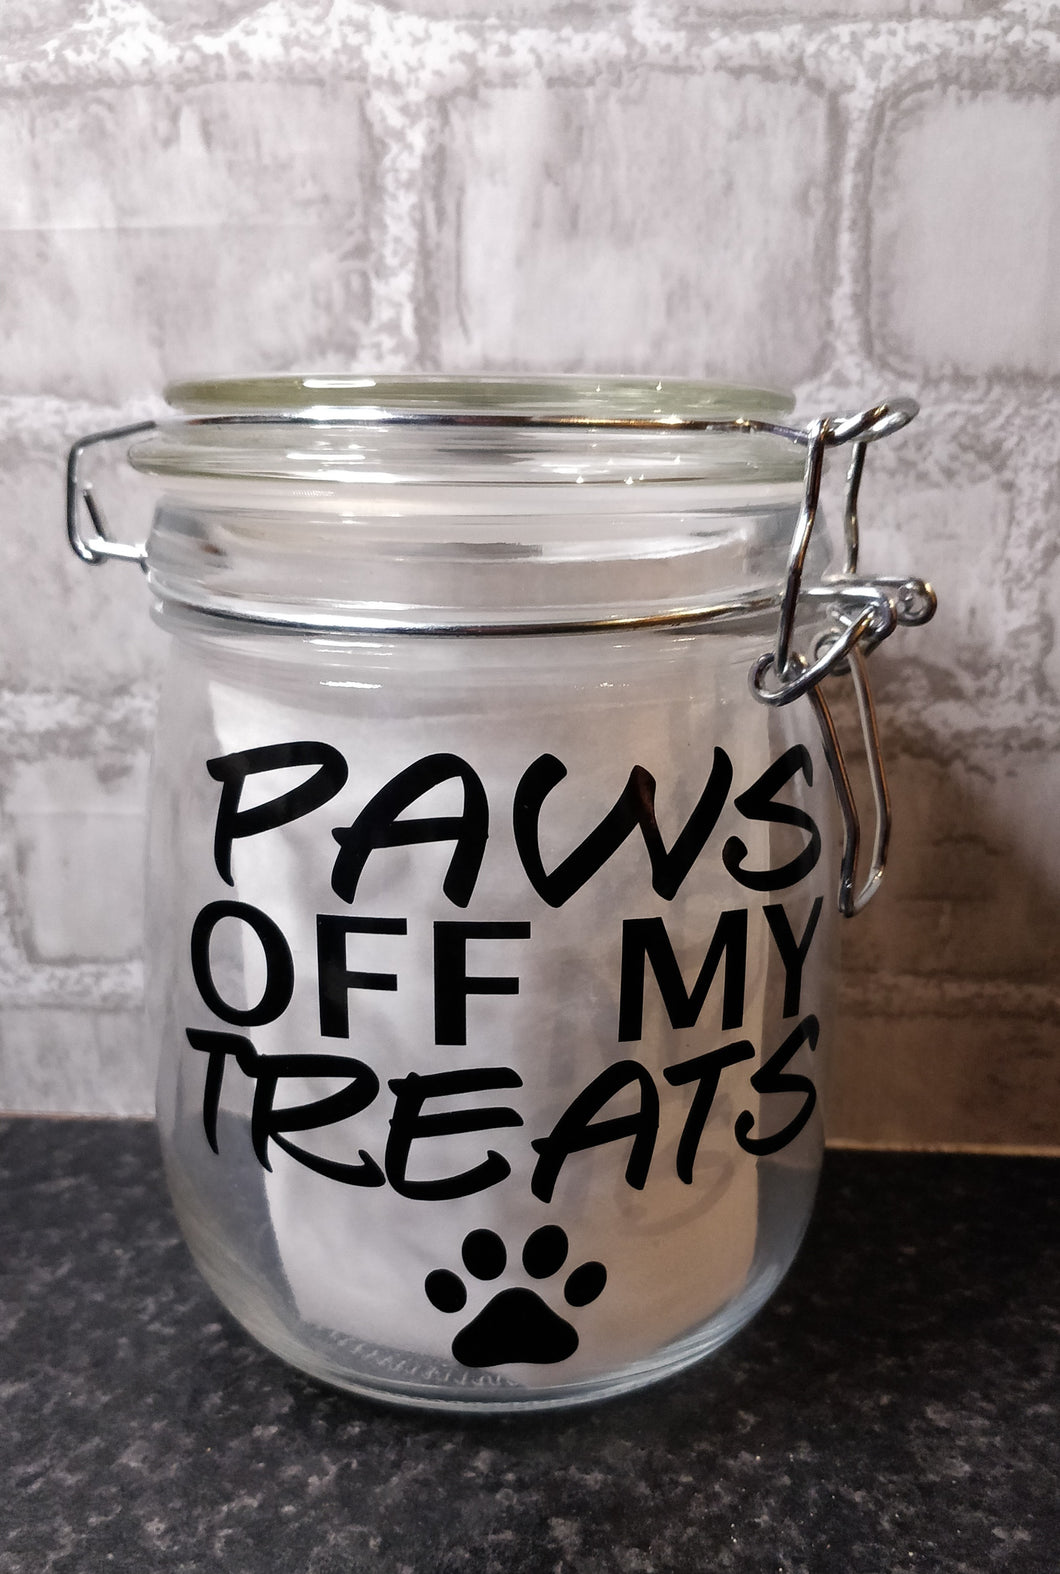 Paws Off Treat Jar